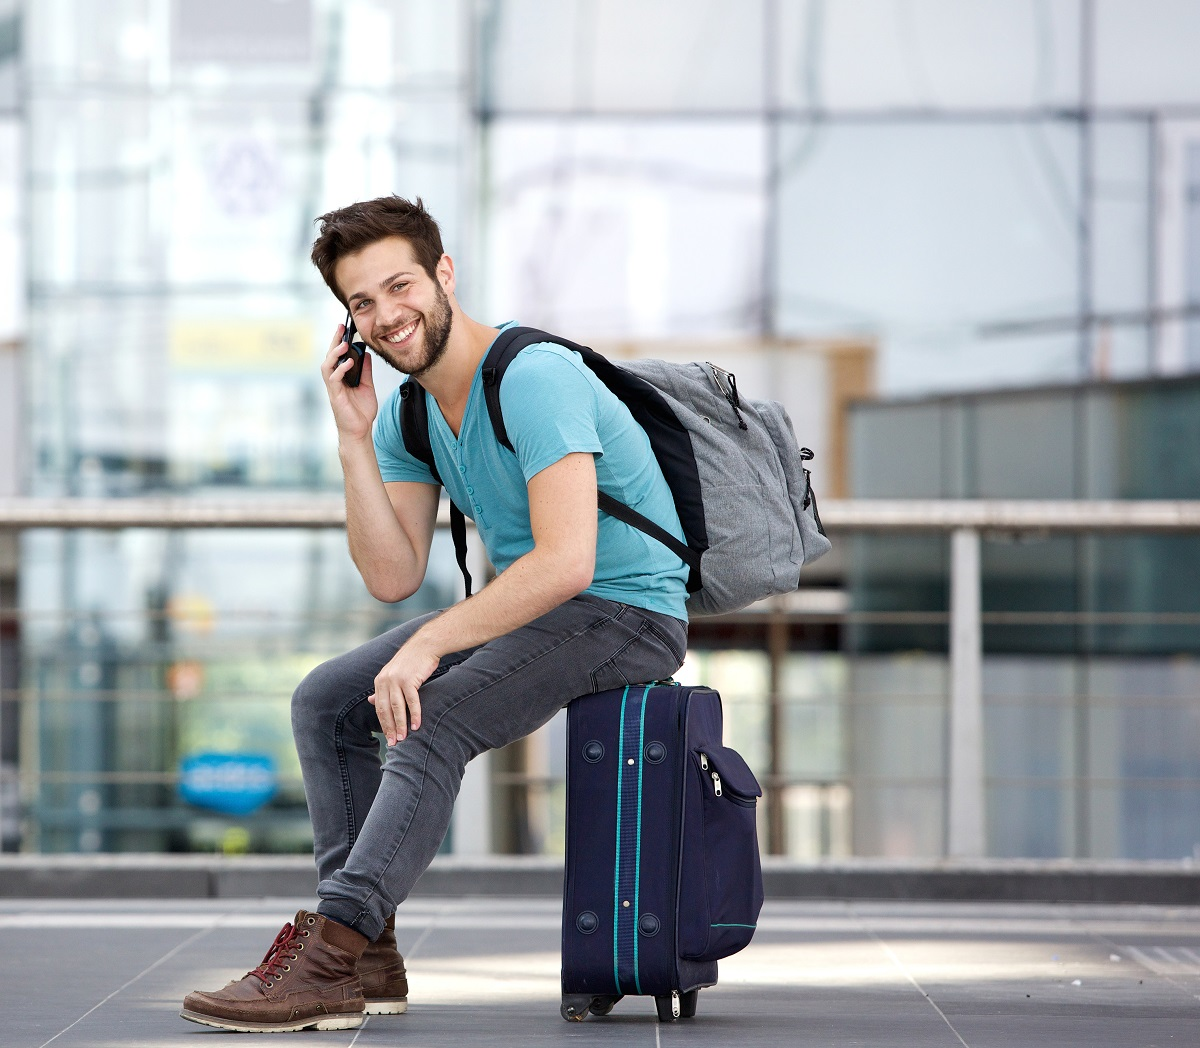 man taking a call on the airport